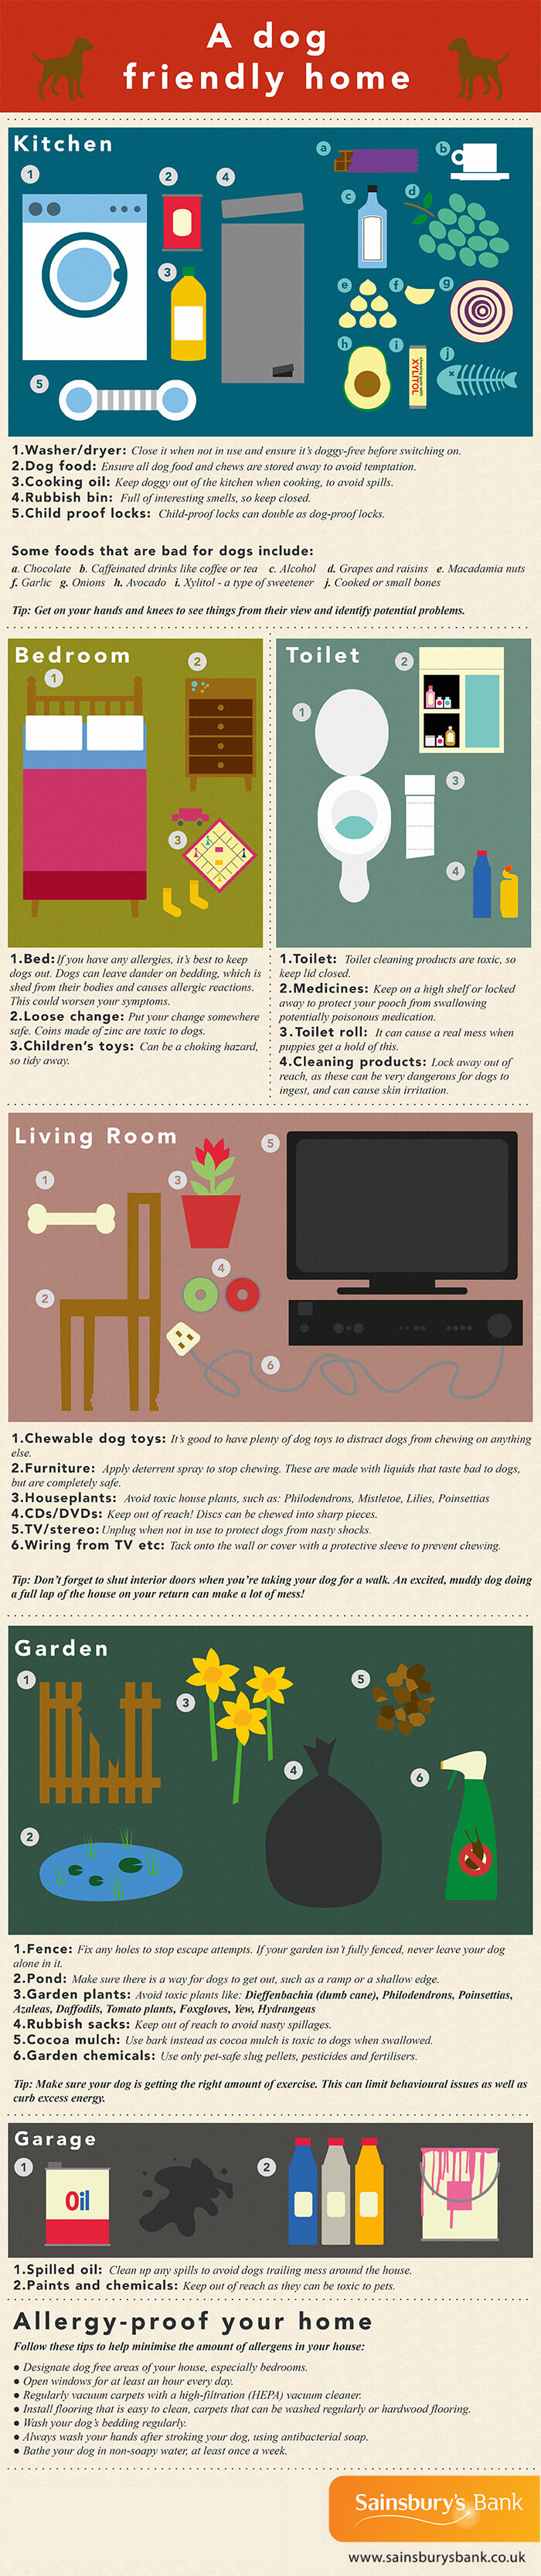 Image infographic explaining how to make numerous sections of your home dog friendly